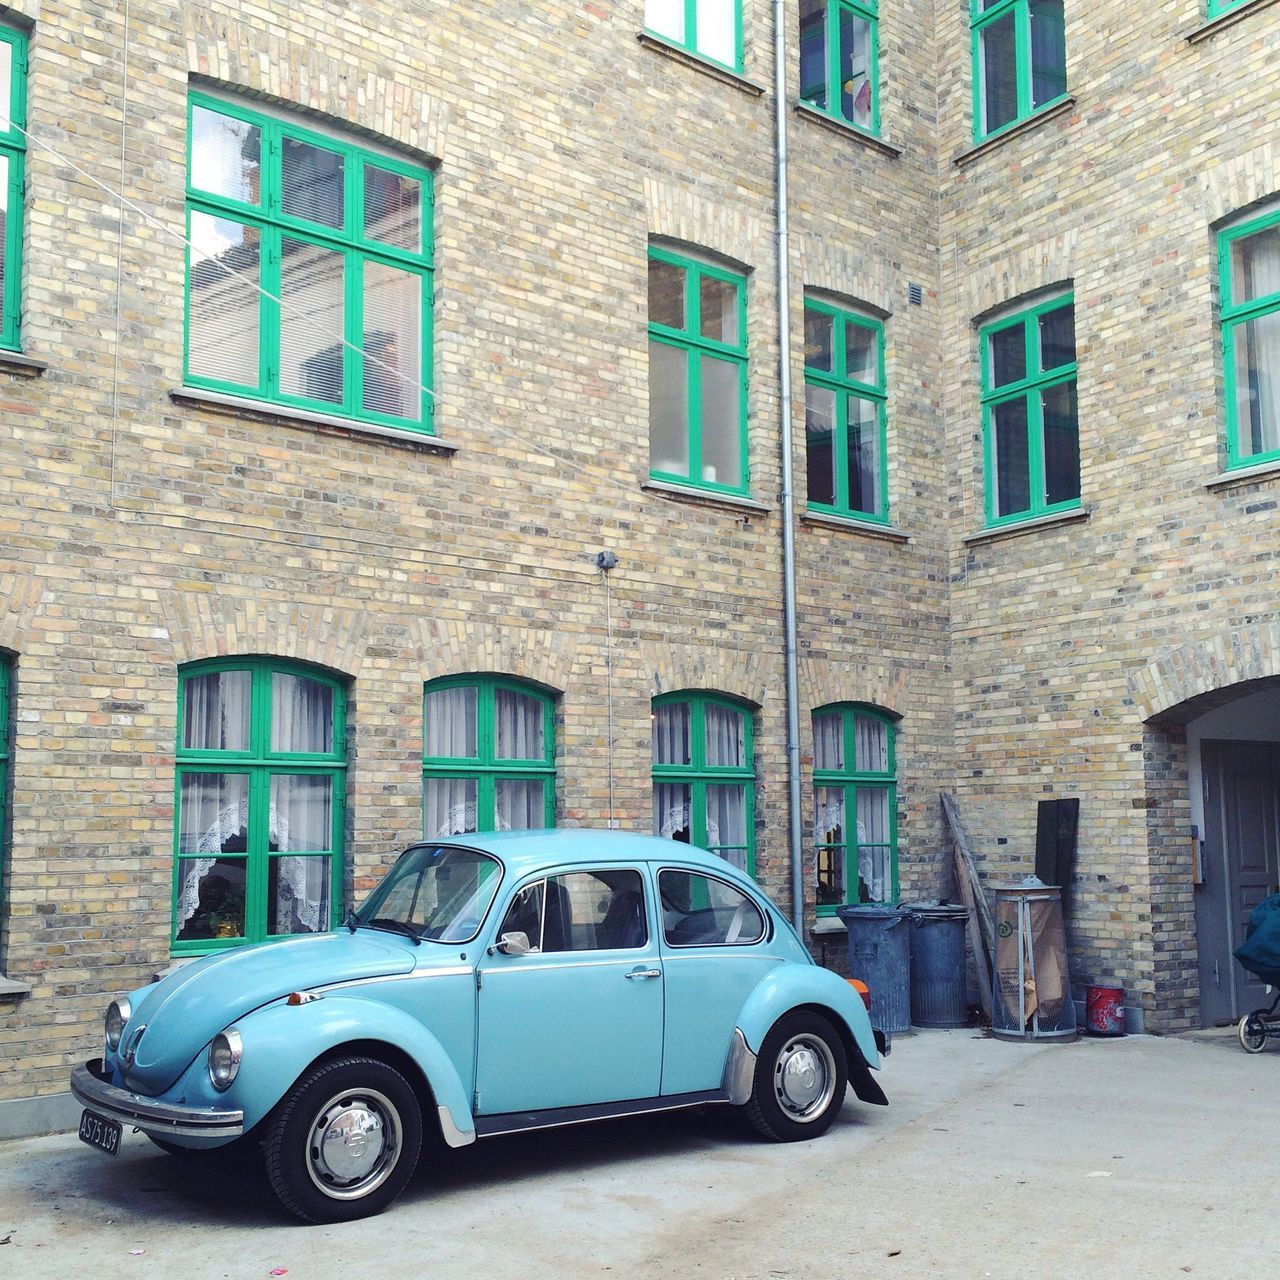 VW Käfer Architecture Babyblue Beetle Brick Building Building Building Exterior Built Structure City City Life Day Dengamleby Façade Gamlebyen Land Vehicle Mode Of Transport No People Outdoors Parked Parking Residential Building Stationary VW Beetle VW Käfer